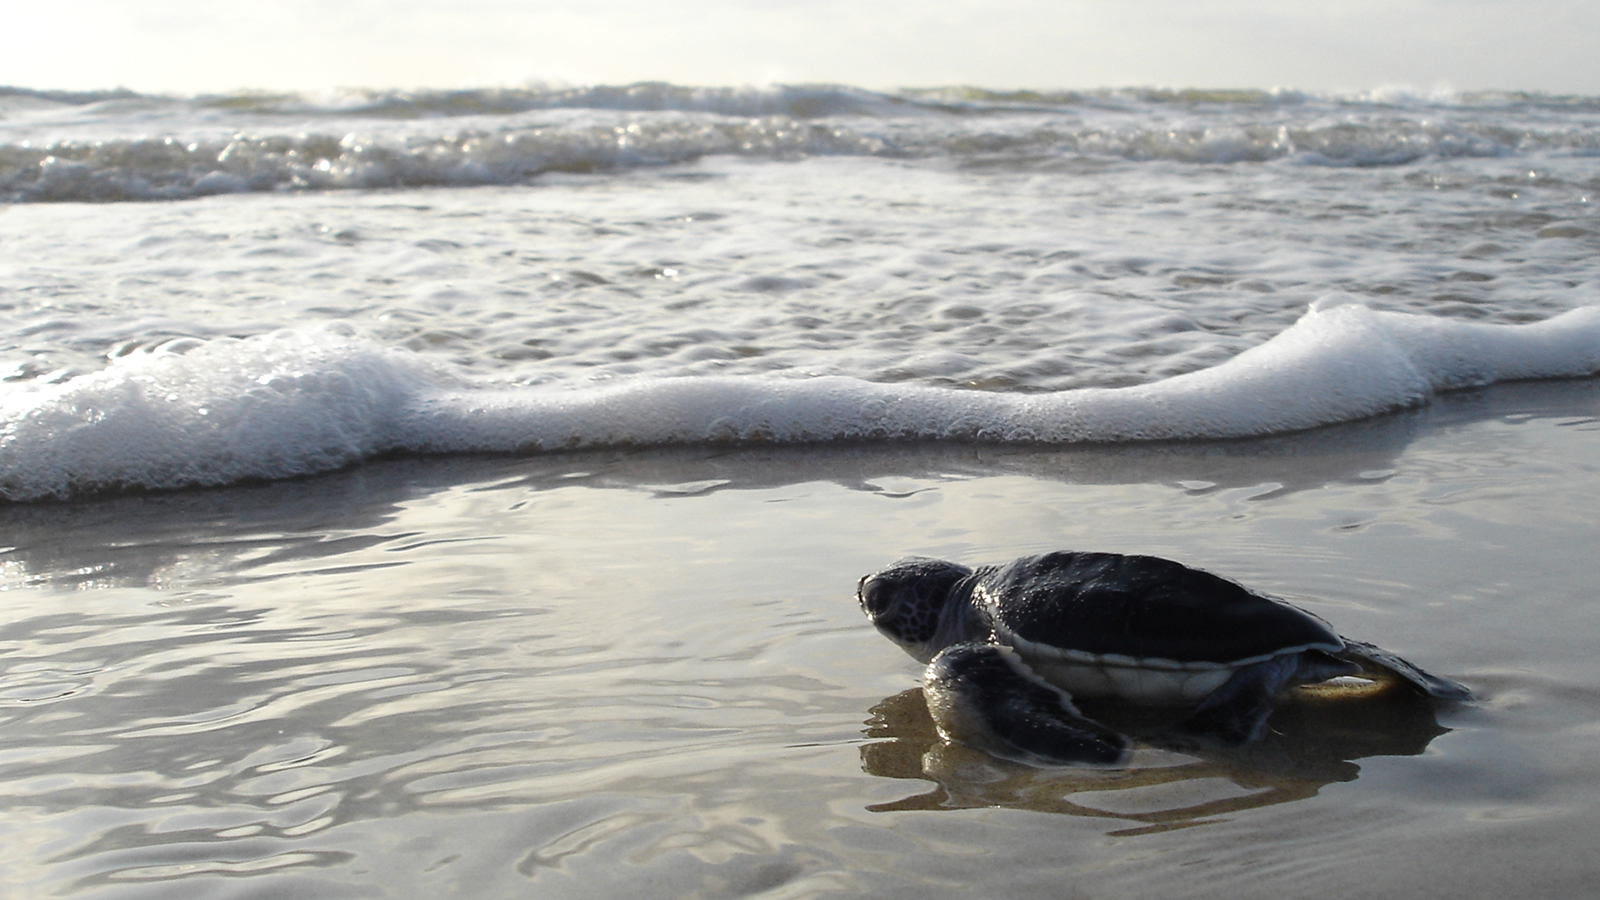 <h4>ENVIRONMENTAL DEFENSE: OUR OCEANS</h4><h5>Goal: We must defend our oceans, marine wildlife and beaches by stopping new offshore drilling and more.</h5><em>NPS Photo</em>